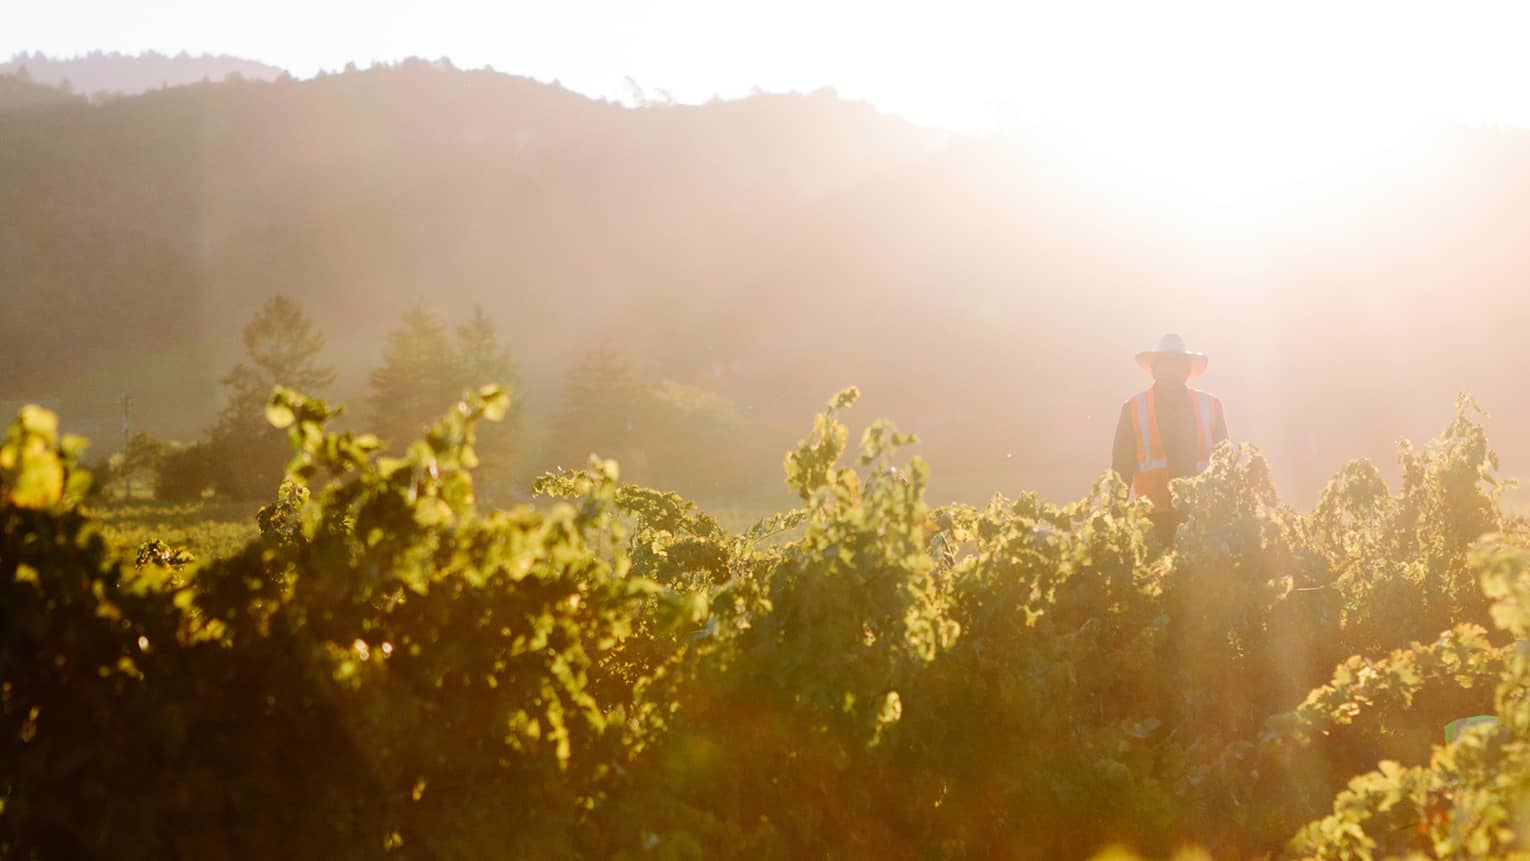 Man wearing hat, orange reflective vest stands in lush vineyard as sun streams down